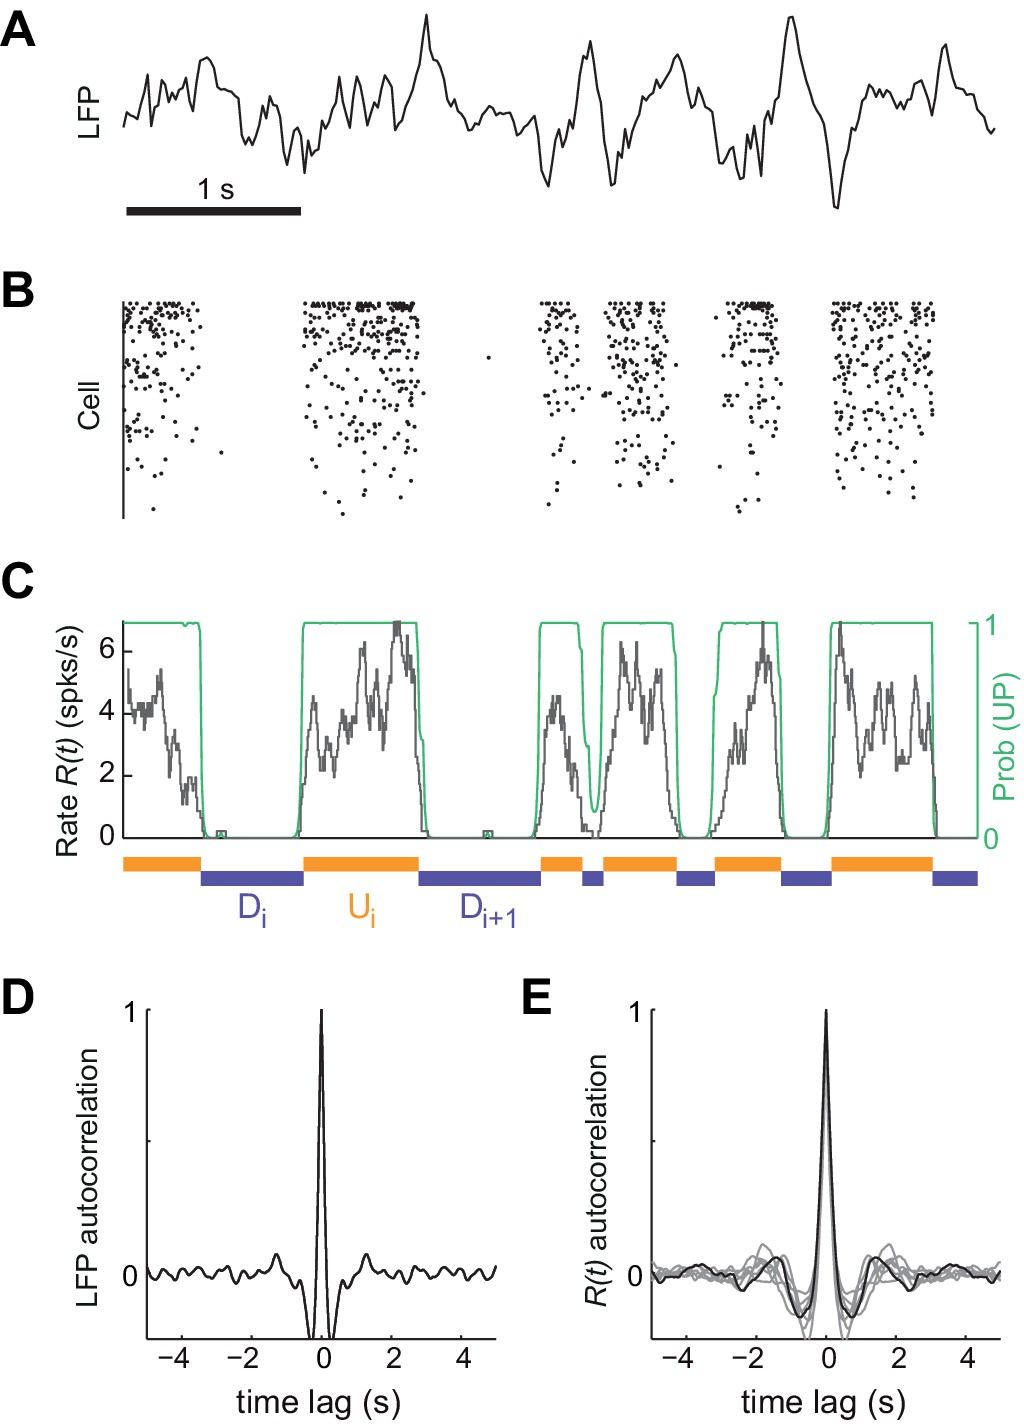 Up Down Cortical Dynamics Reflect State Transitions In A Bistable Counter 4 Bit Timing Diagram Synchronized Brain Activity Under Urethane Anesthesia The Rat Somatosensory Cortex And Detection Of Putative Periods